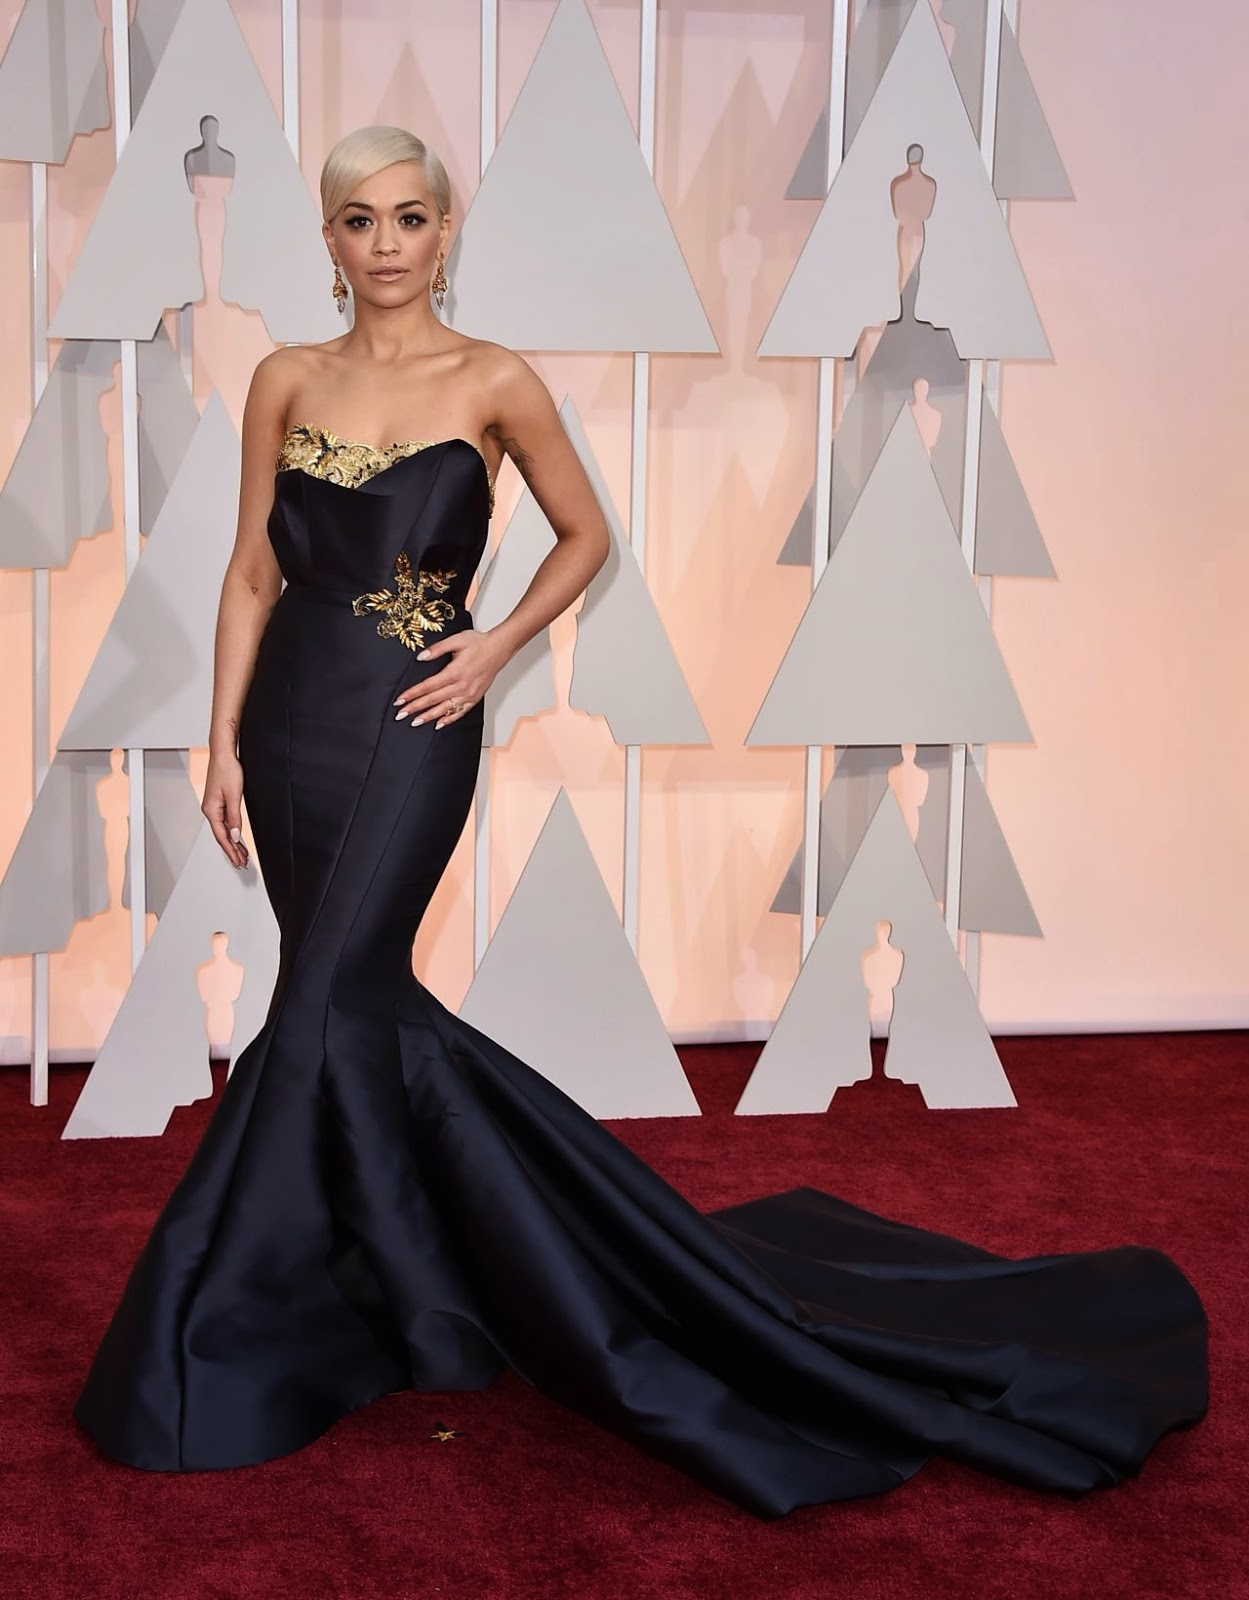 Rita Ora wears a Marchesa corset gown to the 2015 Oscars in Hollywood